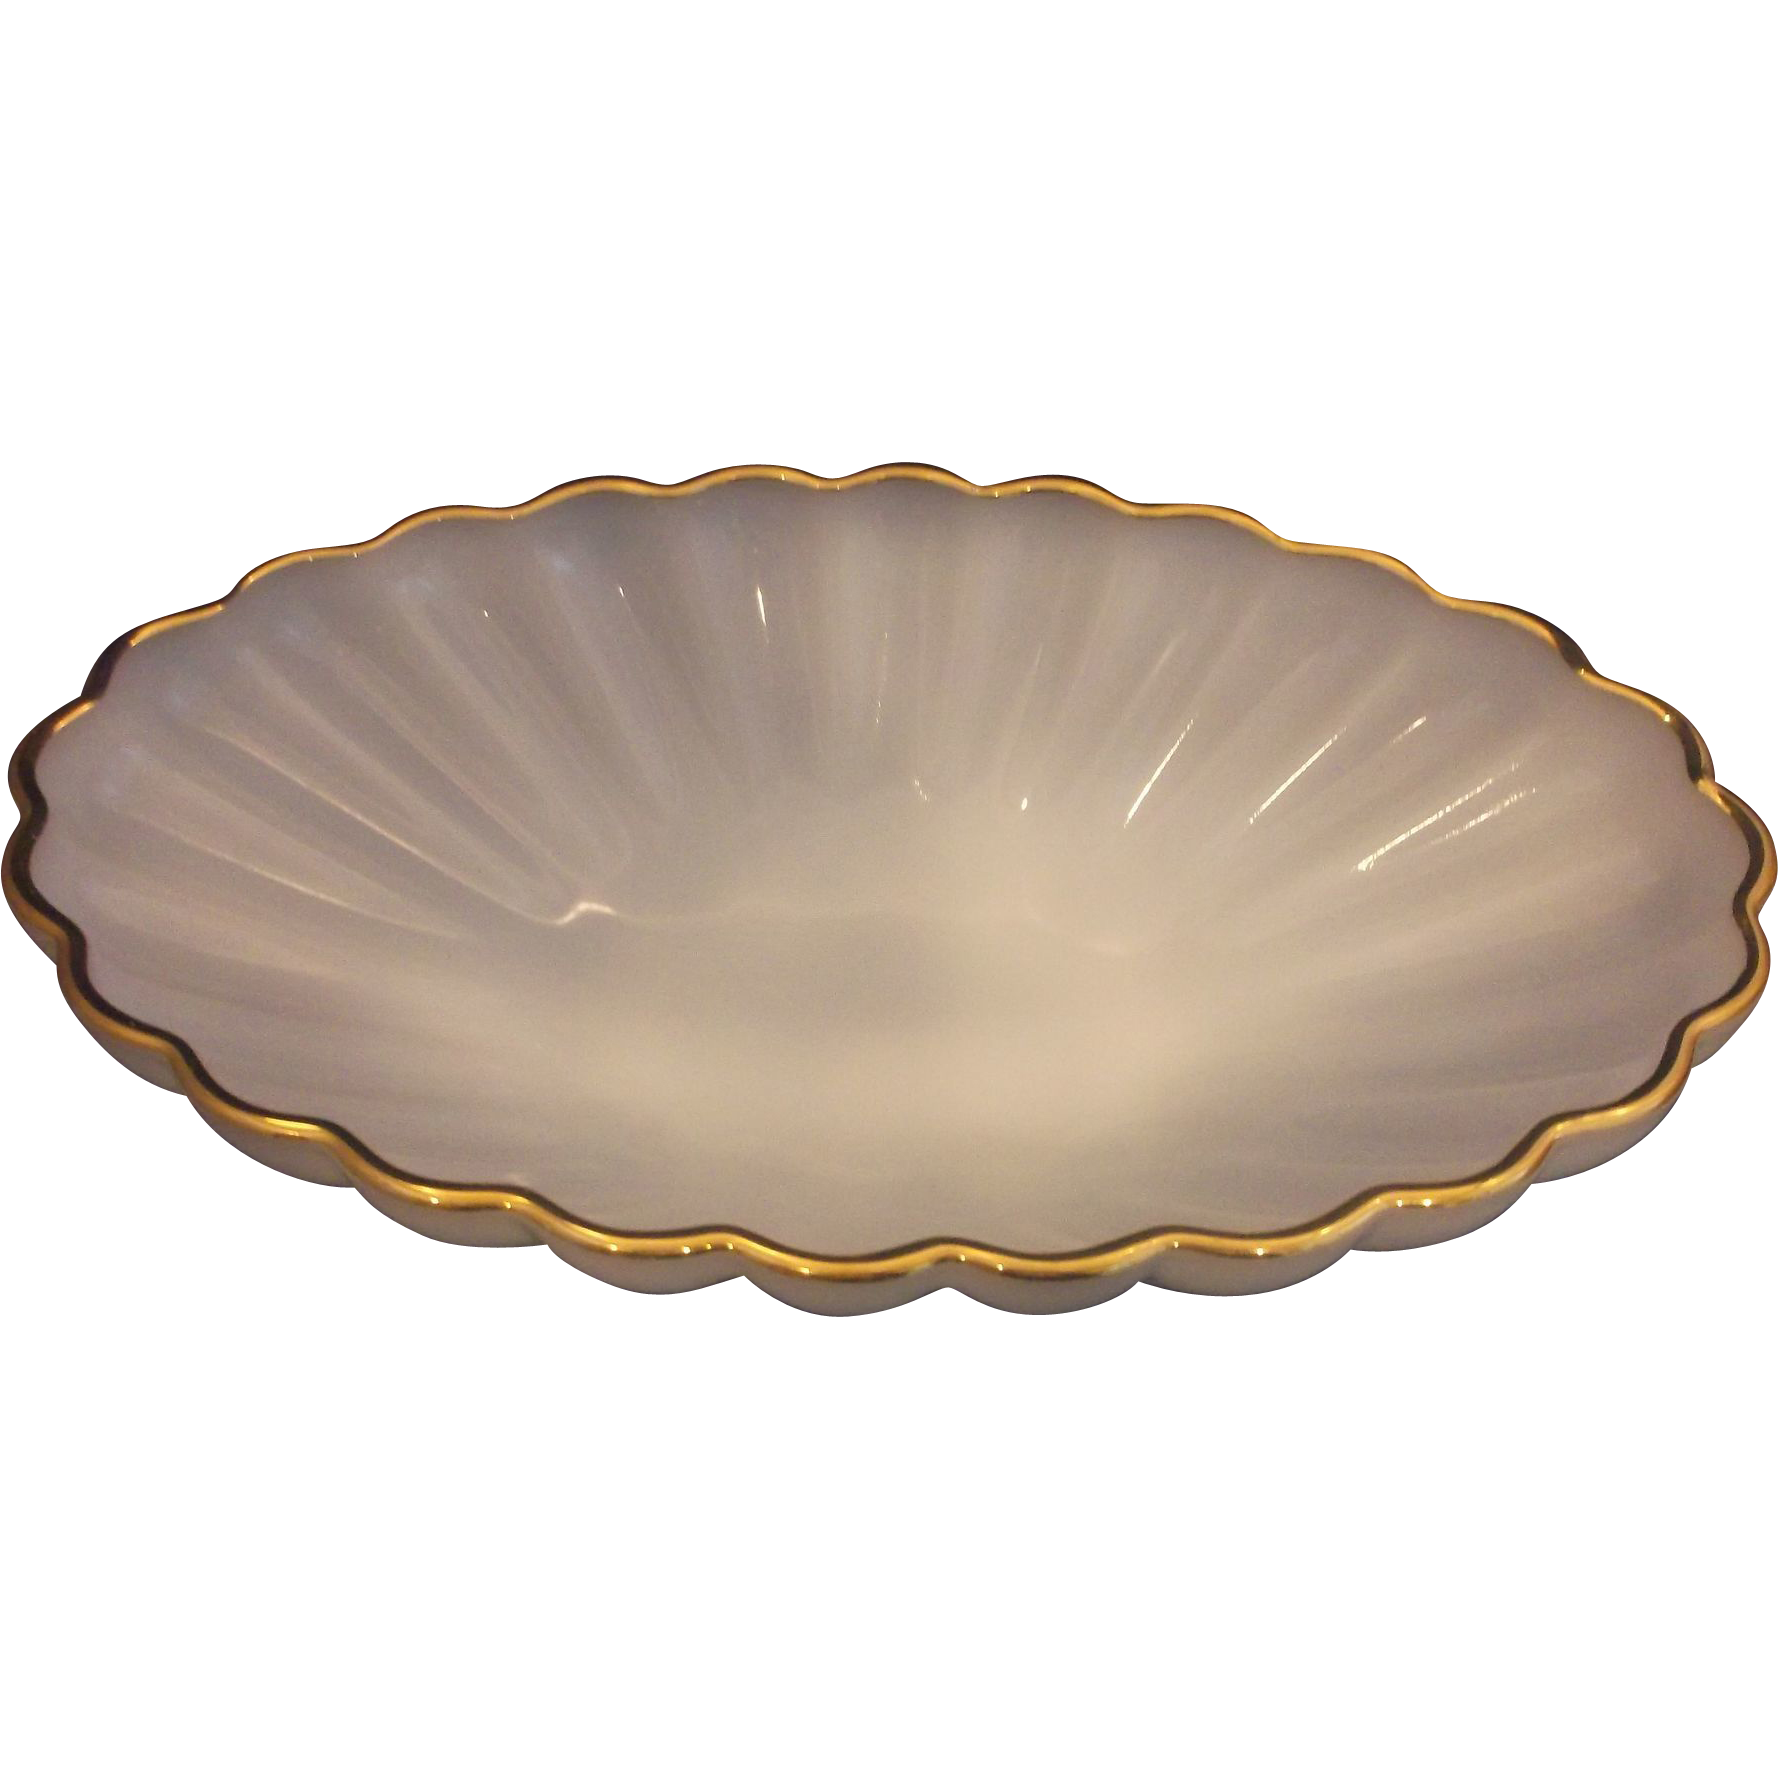 Anchor Hocking Classic Golden Shell Oval Console Serving Bowl